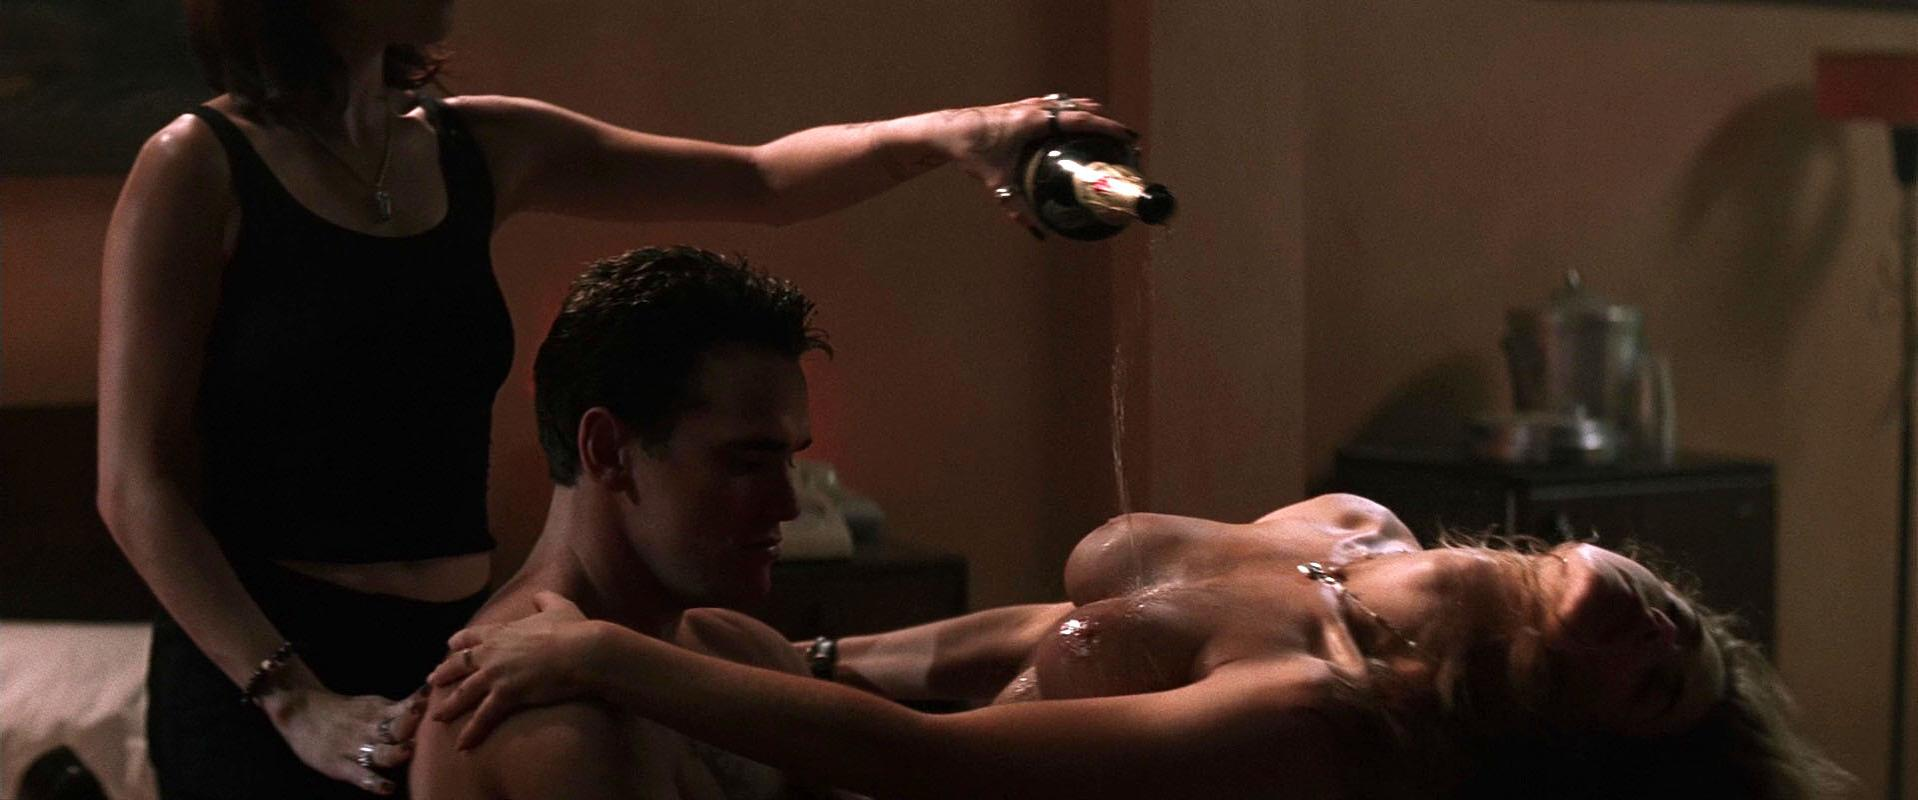 Denise Richards nude, Neve Campbell sexy - Wild Things (1998)